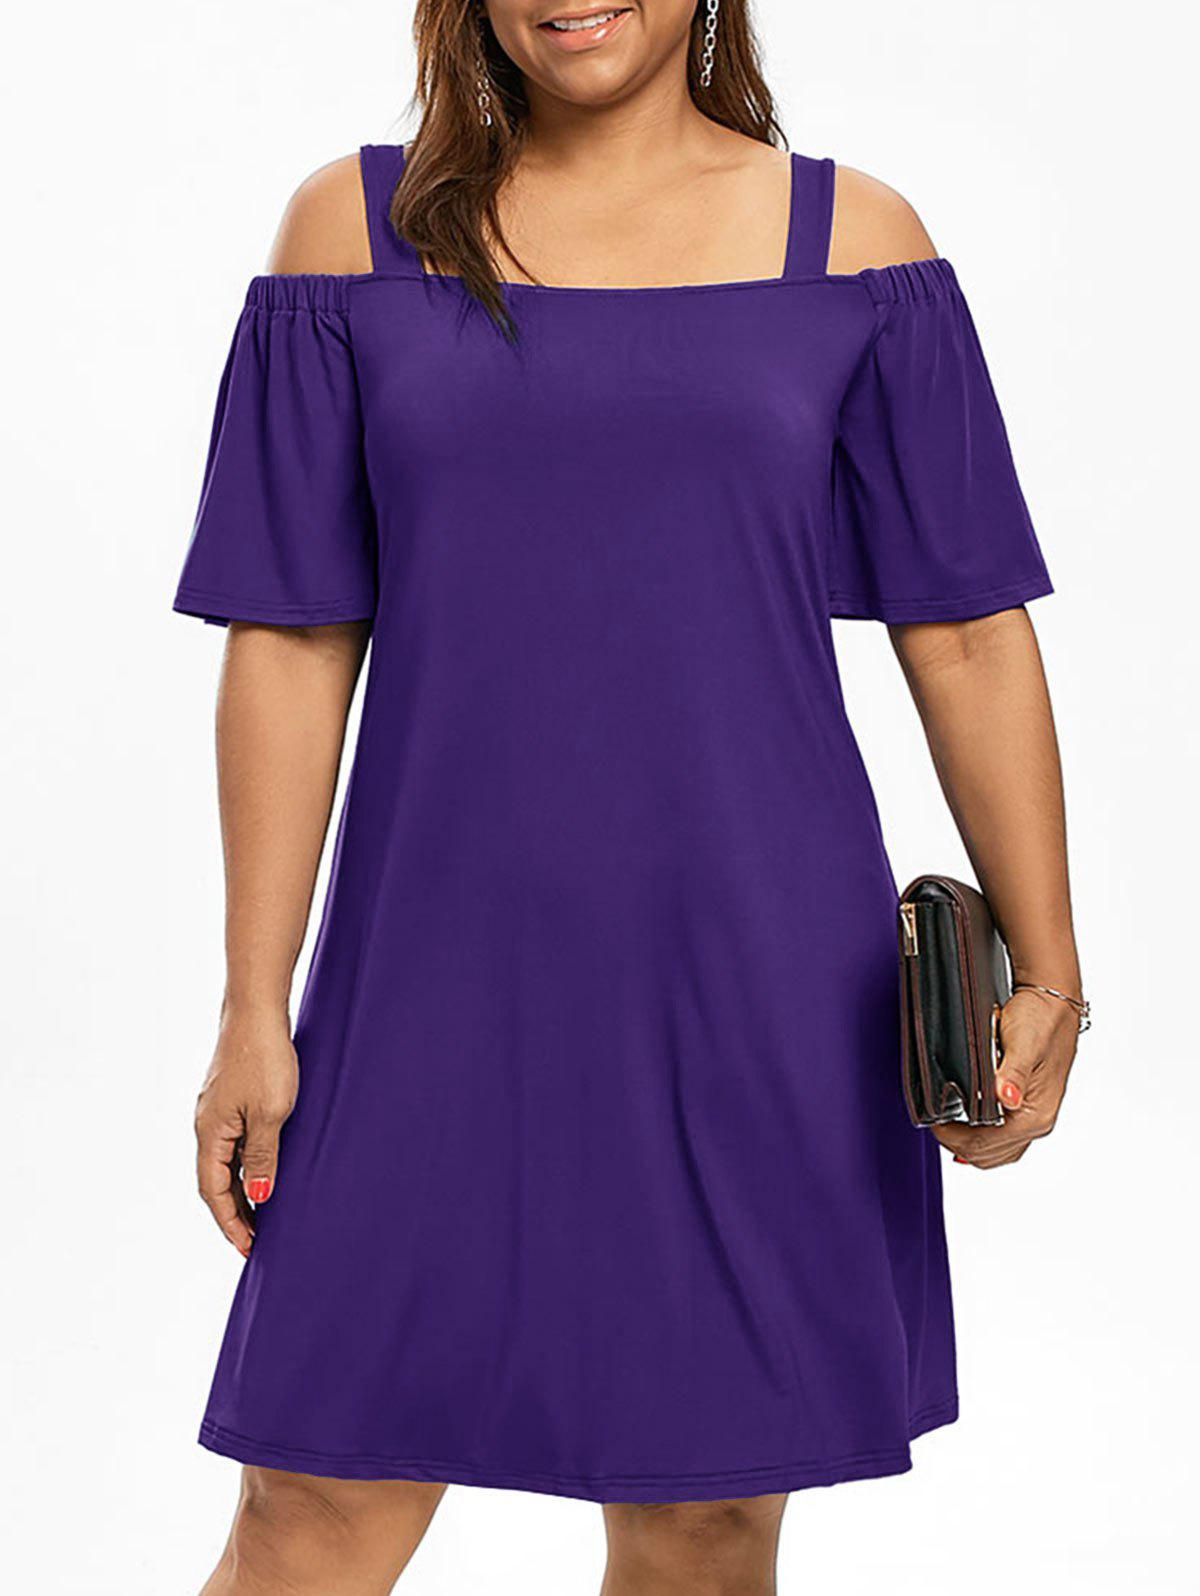 Cold Shoulder Half Sleeve Plus Size DressWOMEN<br><br>Size: 4XL; Color: PURPLE; Style: Brief; Material: Polyester,Spandex; Silhouette: A-Line; Dresses Length: Knee-Length; Neckline: Square Collar; Sleeve Type: Flare Sleeve; Sleeve Length: Half Sleeves; Waist: Natural; Pattern Type: Solid Color; Elasticity: Elastic; With Belt: No; Season: Fall,Spring; Weight: 0.3200kg; Package Contents: 1 x Dress;